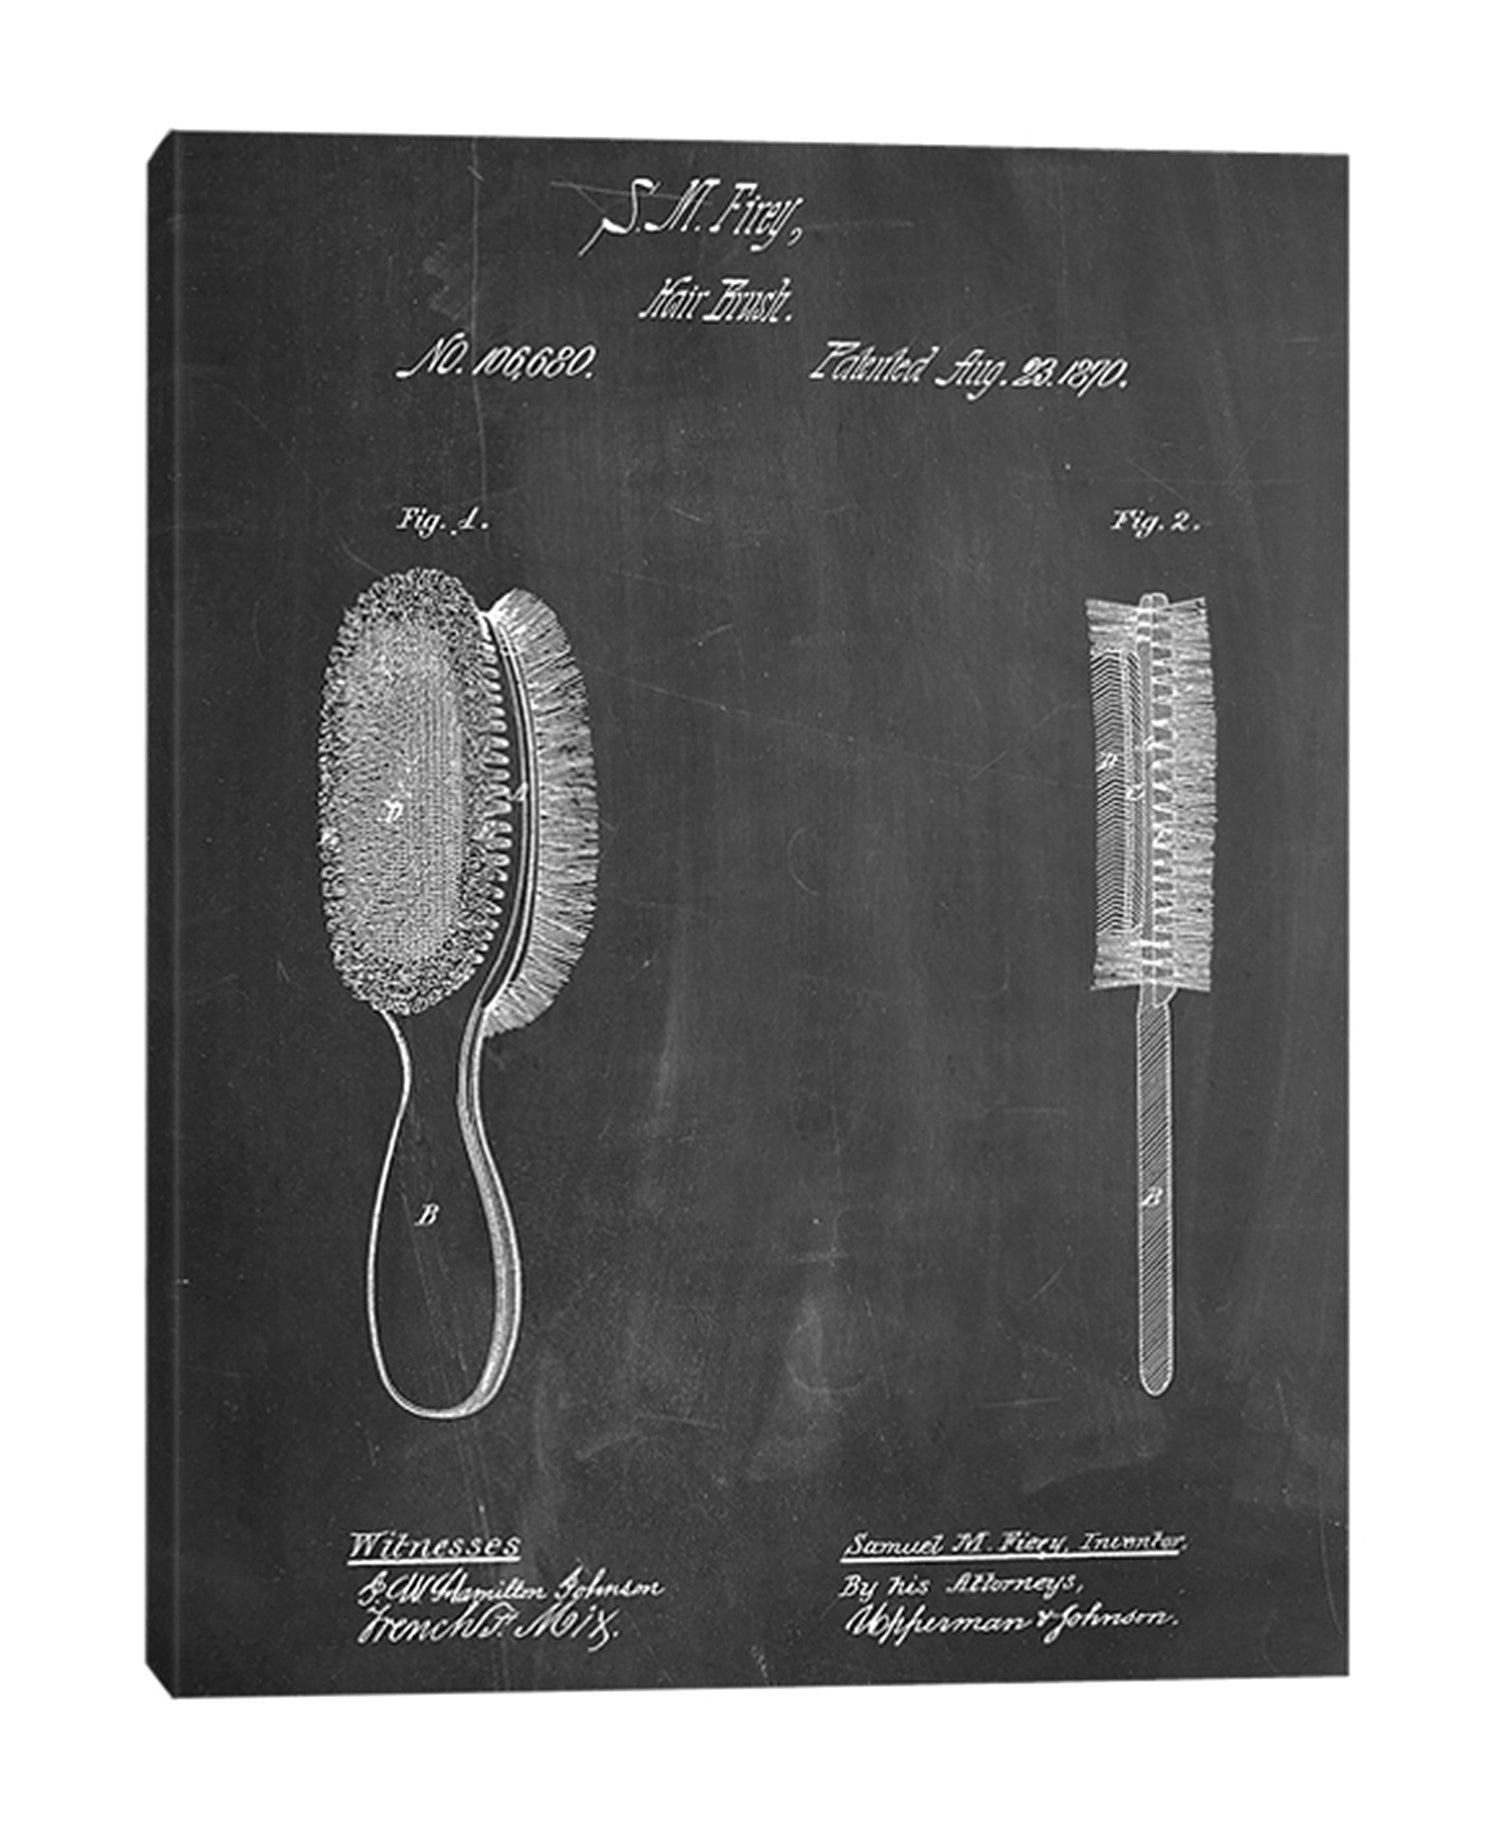 Cole-Borders,Modern & Contemporary,Entertainment,hair brush,brush,patented,drawing,sketches,wirds and phrases,hairbrushes,Red,Charcoal Gray,Gray,Black